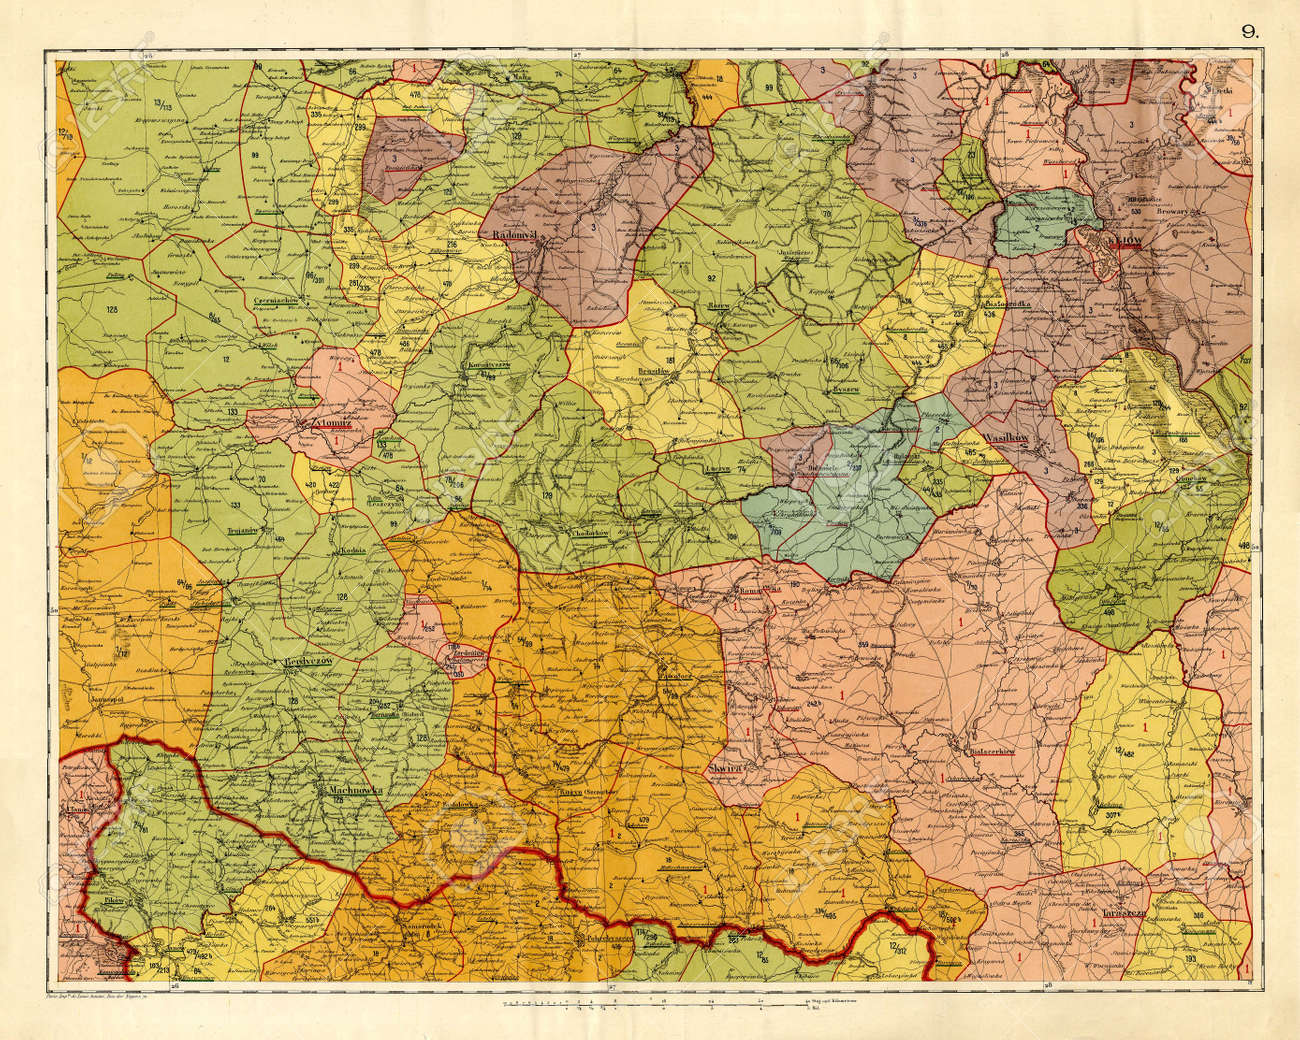 Old map Stock Photo - 7697819